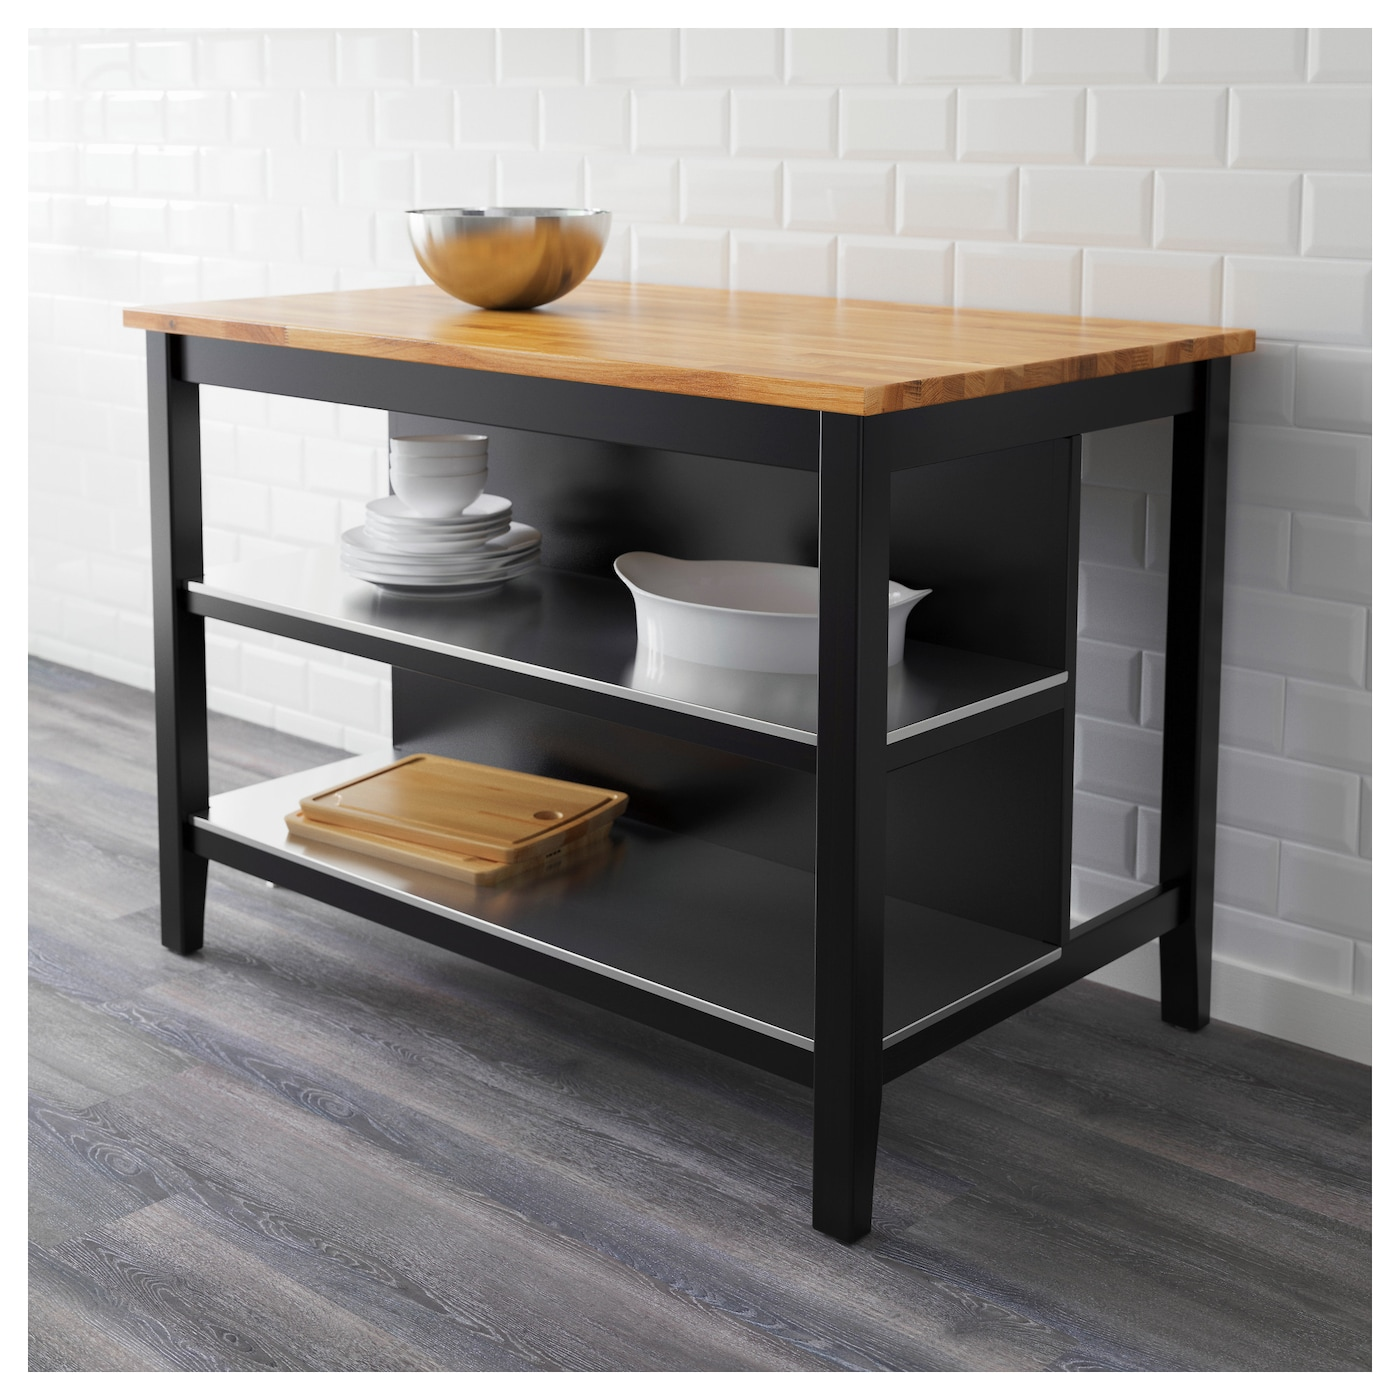 Stenstorp kitchen island black brown oak 126x79 cm ikea for Ikea stenstorp ka cheninsel